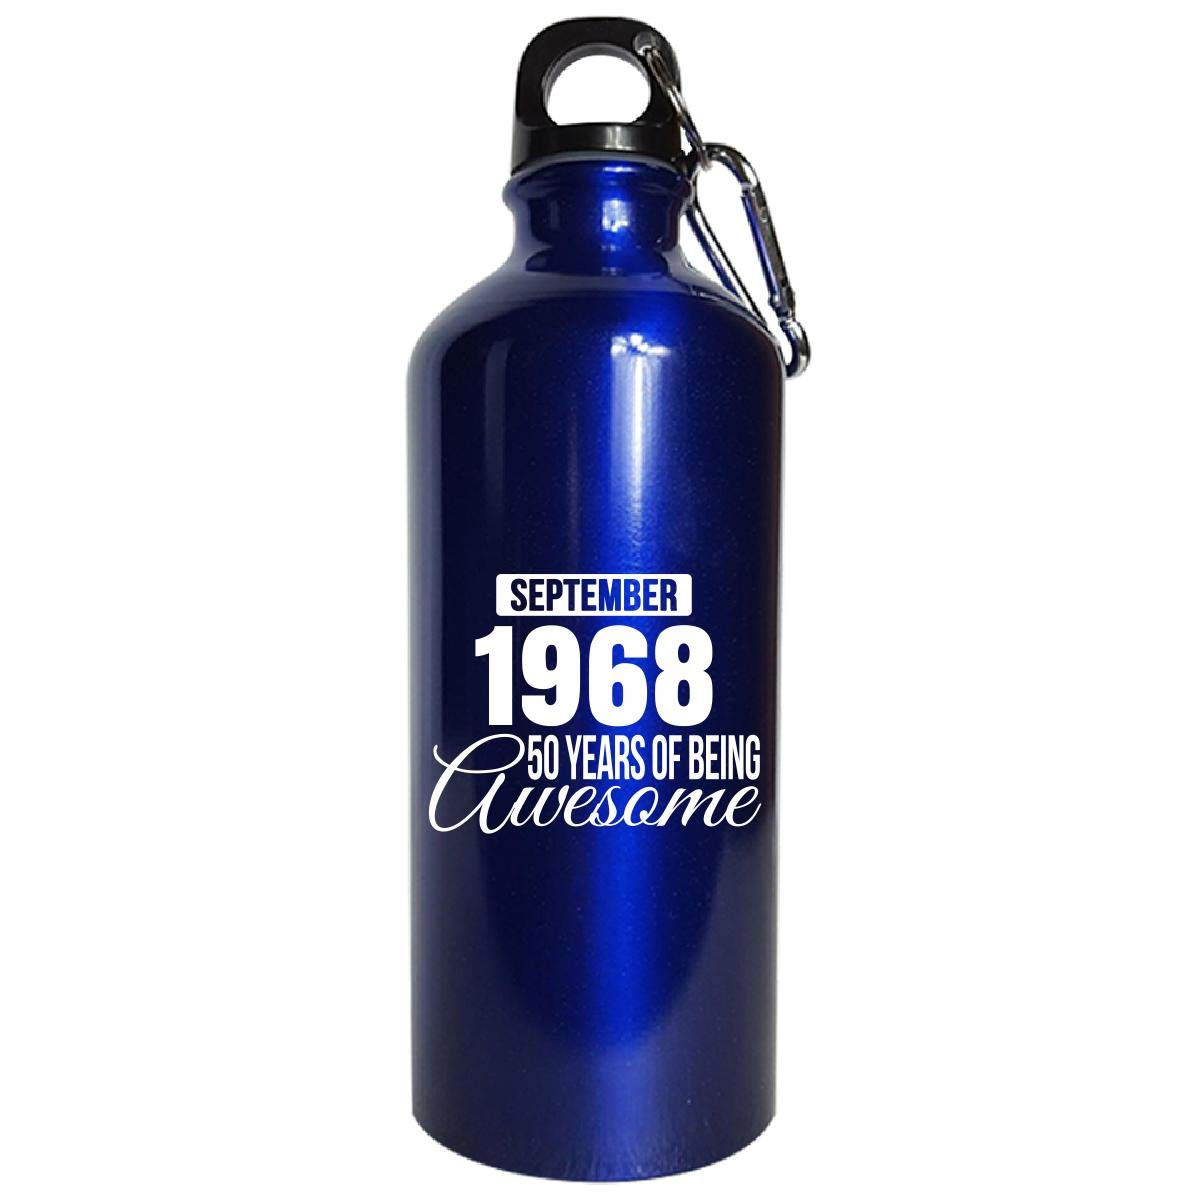 September 1968 50 Years Of Being Awesome Funny Birthday Gift - Water Bottle Metallic Blue by Shirt Luv (Image #1)